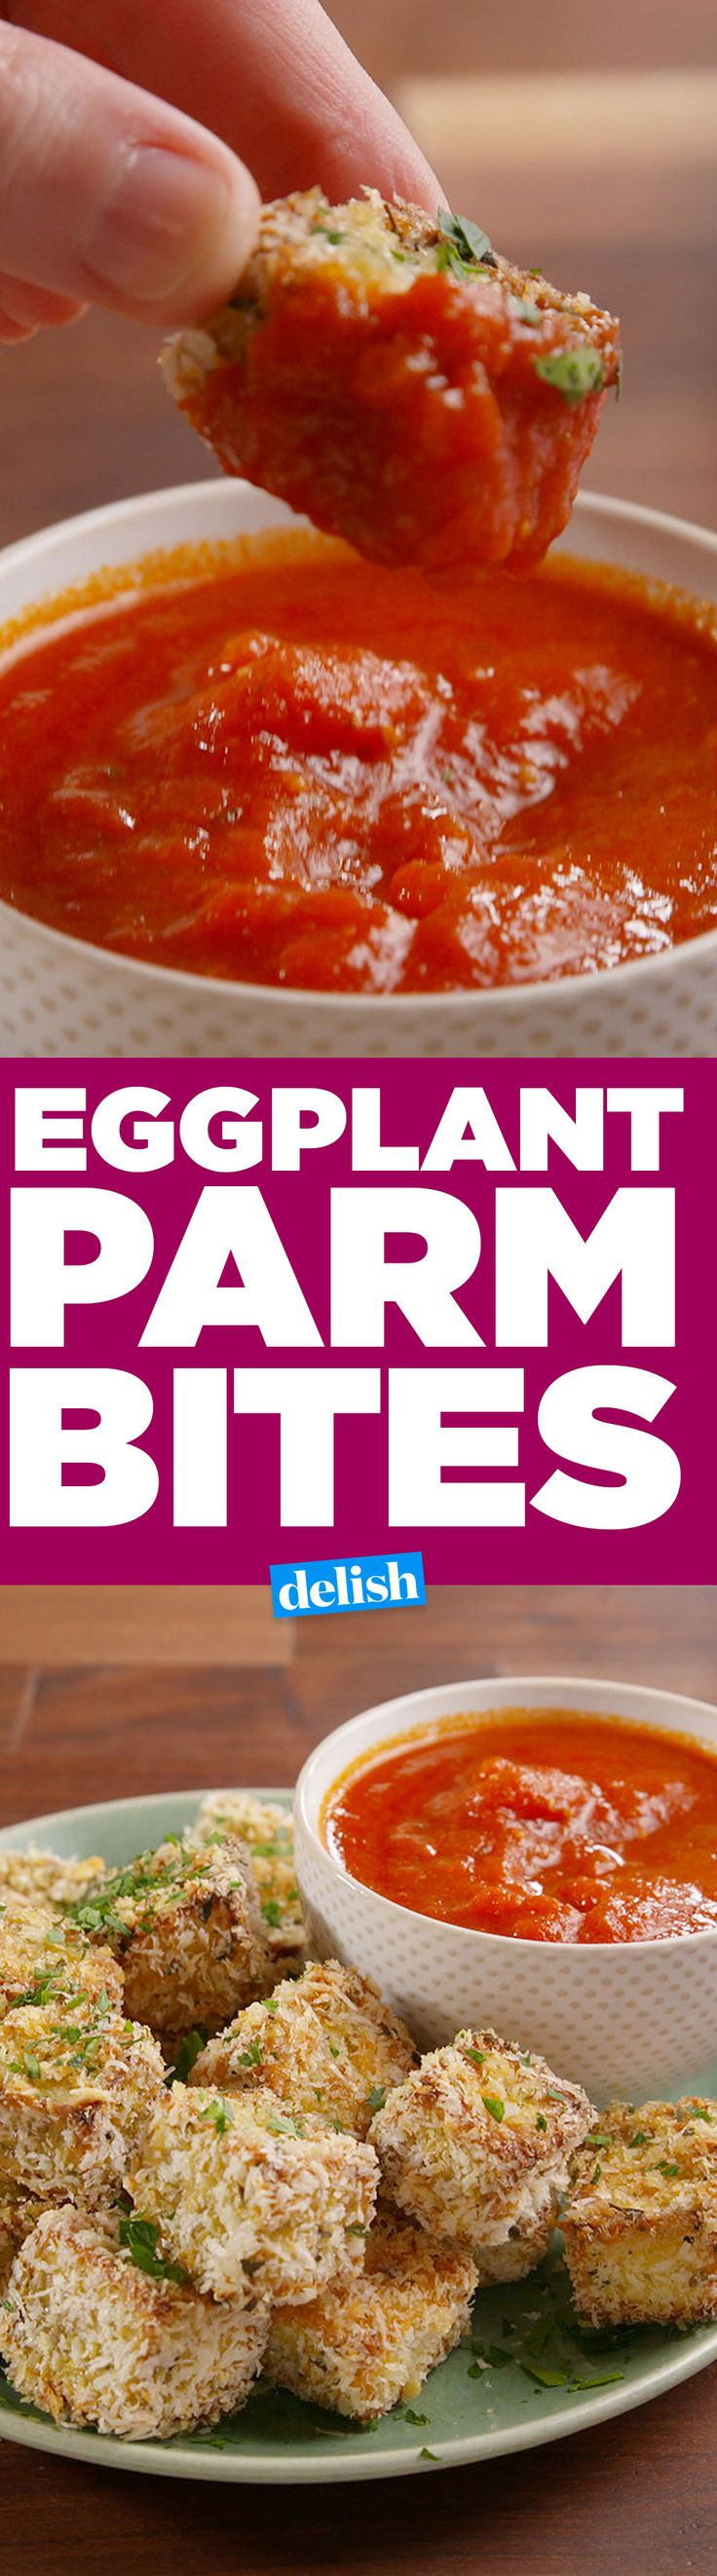 WARNING: Once you start eating these Eggplant Parm Bites, you won't be able to stop. Get the recipe on Delish.com.